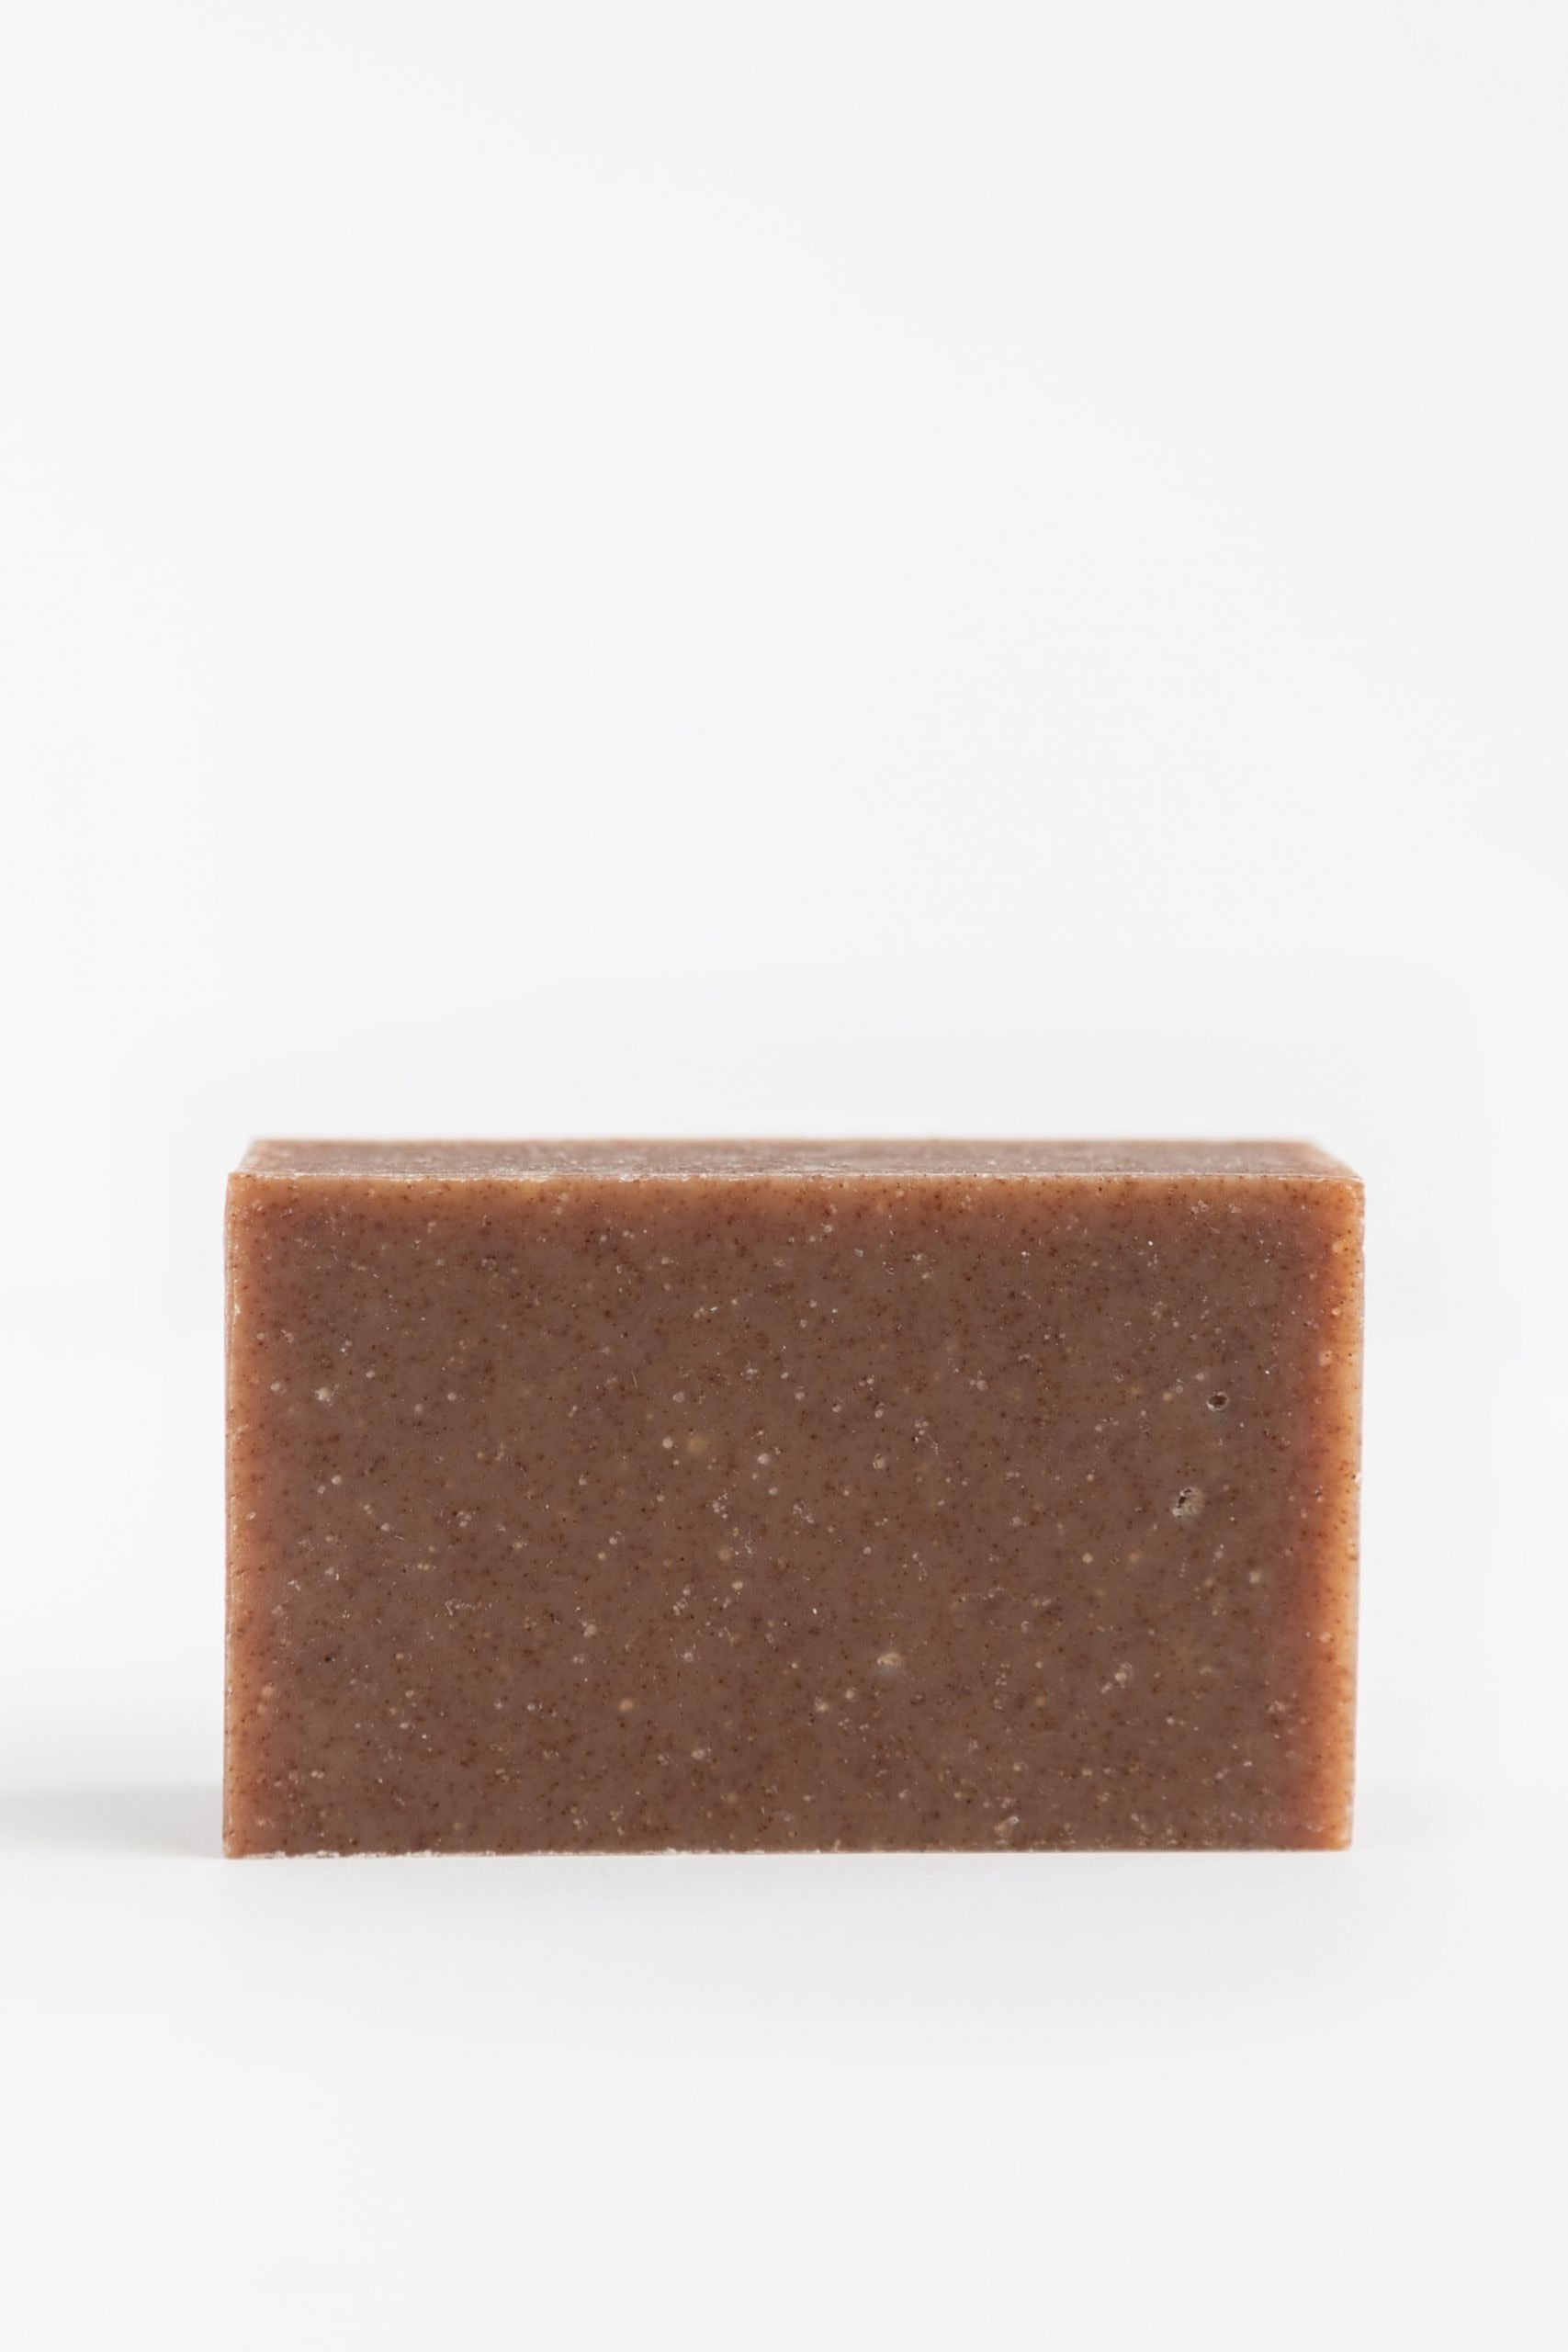 MOISTURIZING ROSEHIP FACE AND BODY SOAP